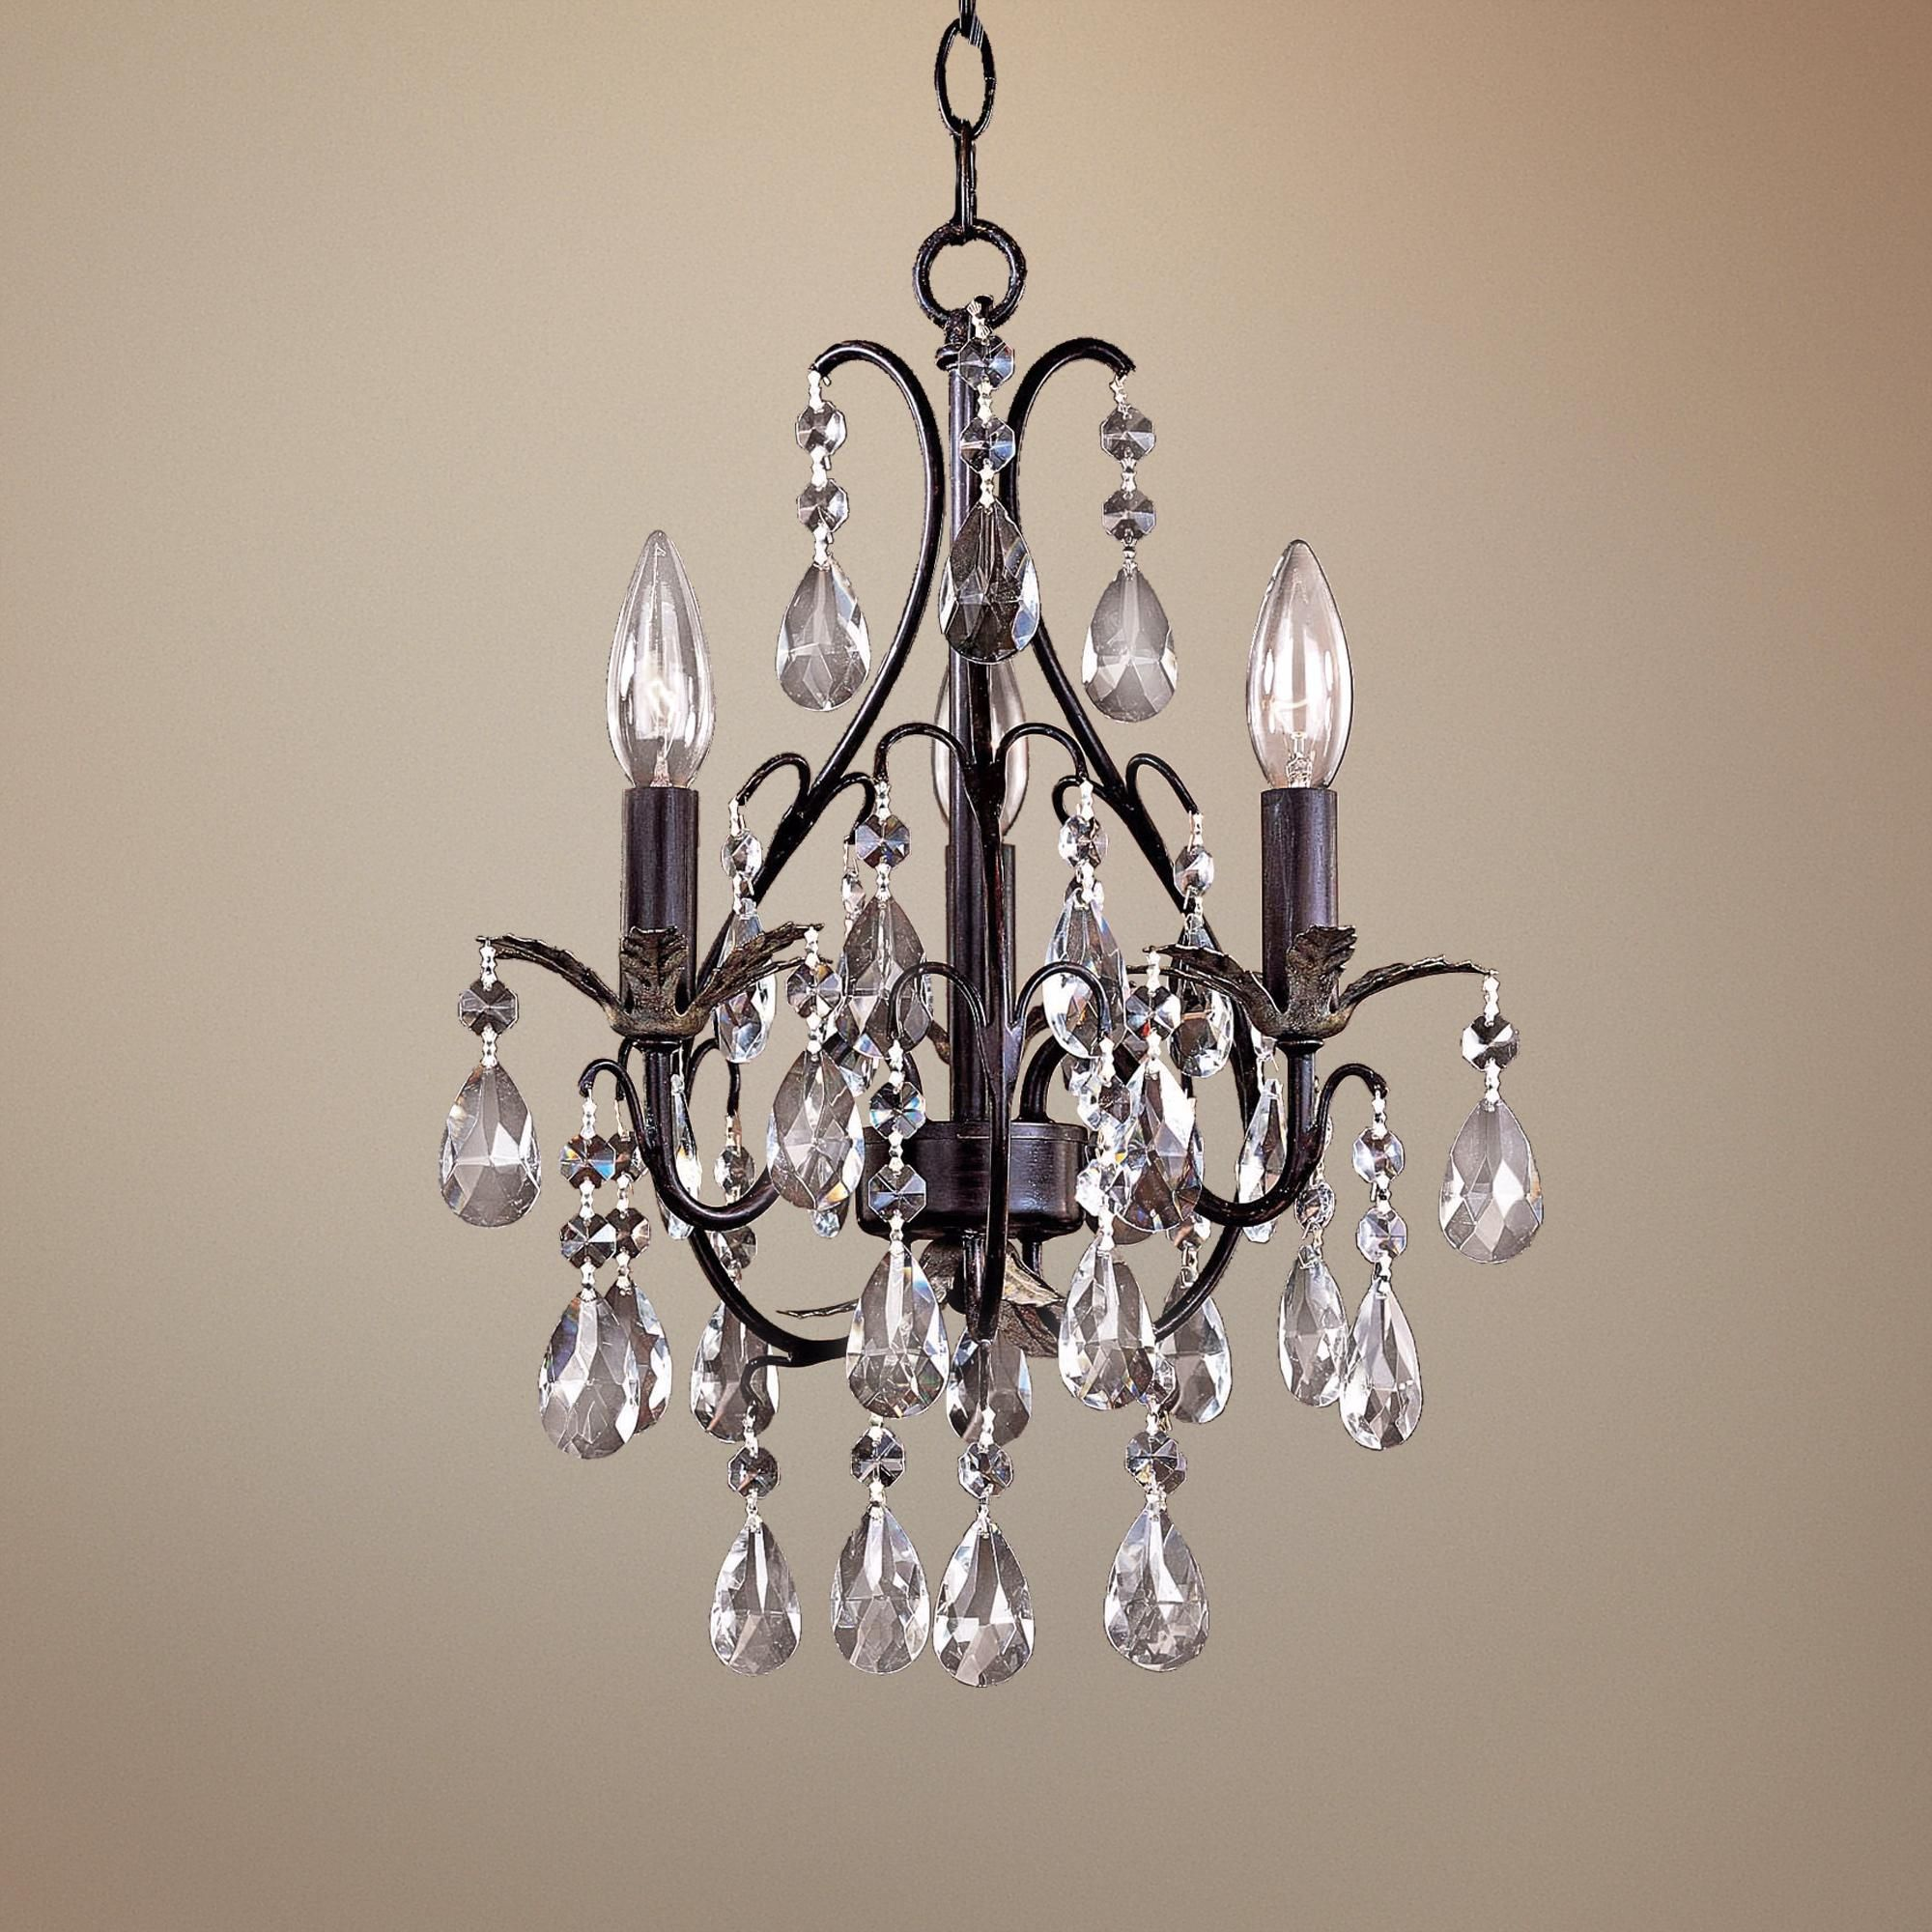 Small Simple Chandelier Castlewood Walnut Silver Finish 3 Light Mini Chandelier 83484